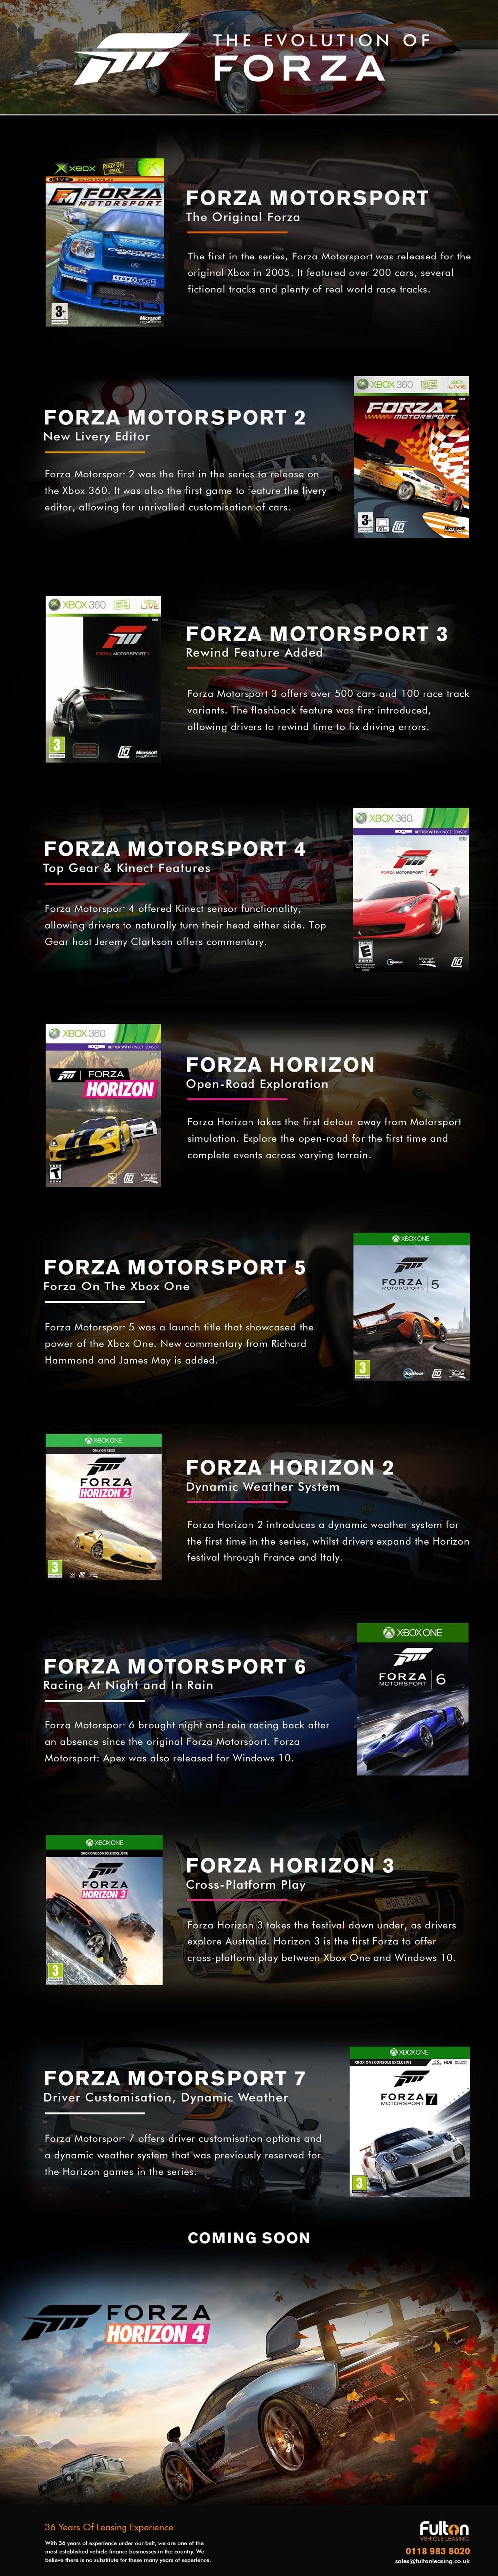 The Evolution of Forza